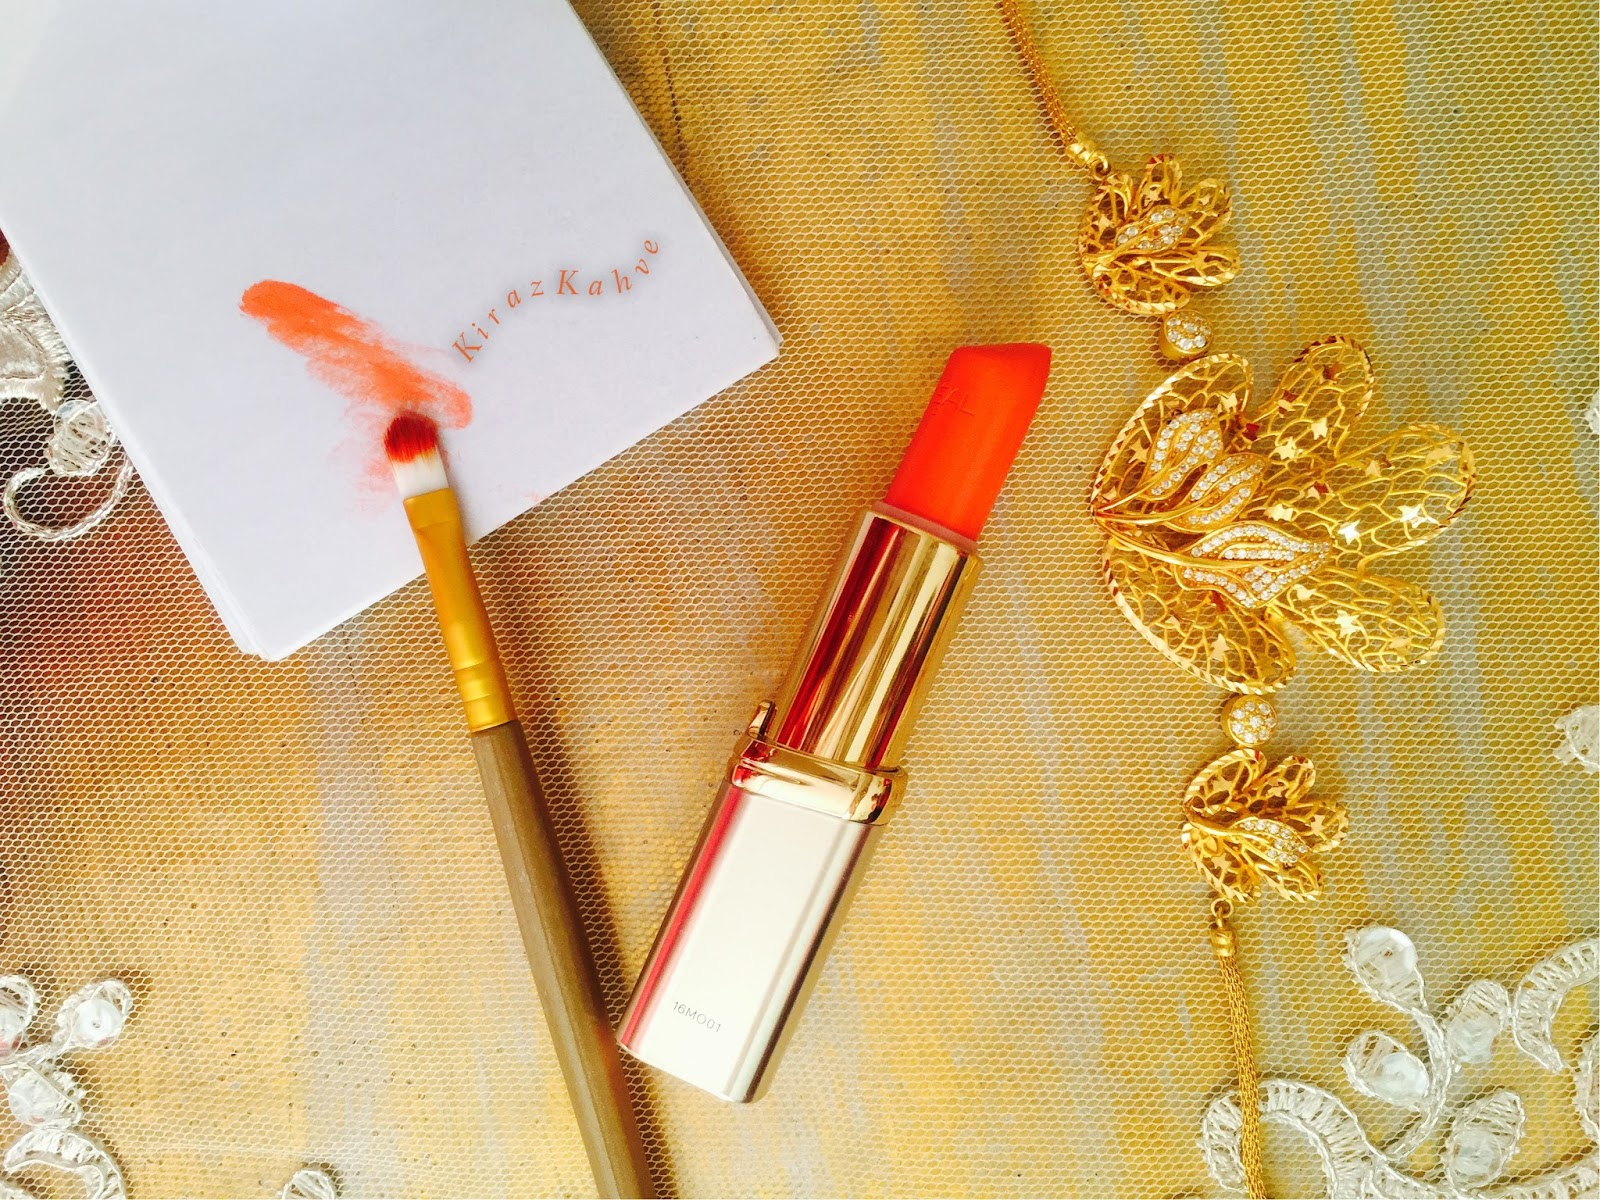 L'oreal Paris Color Riche Ruj 238 - Orange After Party İnceleme